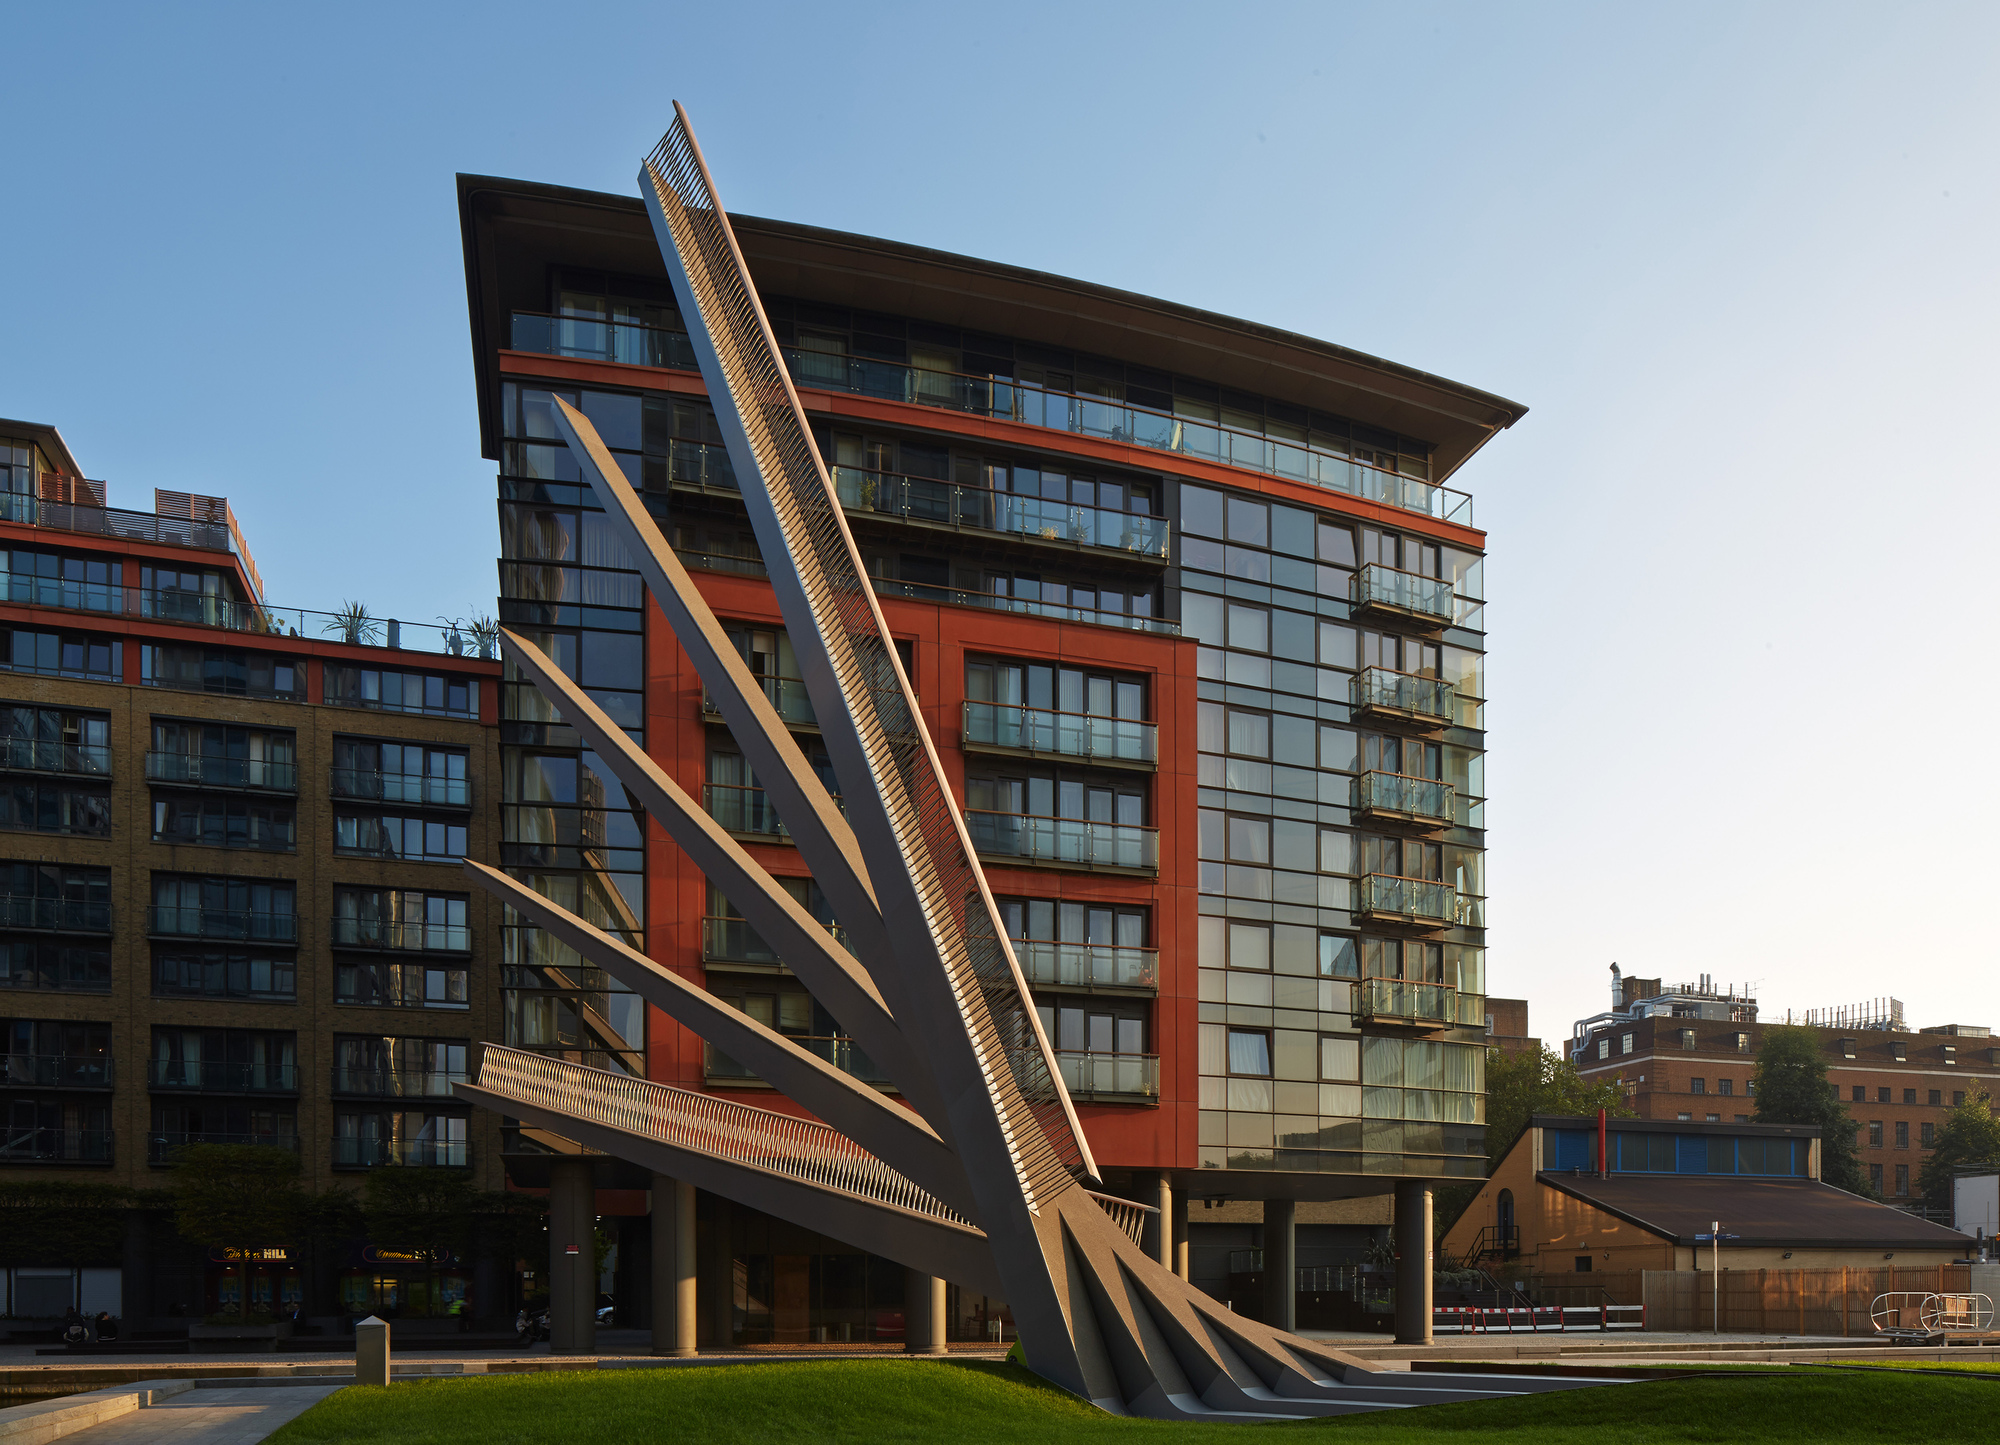 542de4d3c07a80548f0004bb_merchant-square-footbridge-knight-architects_merchant_square_bridge1_medium